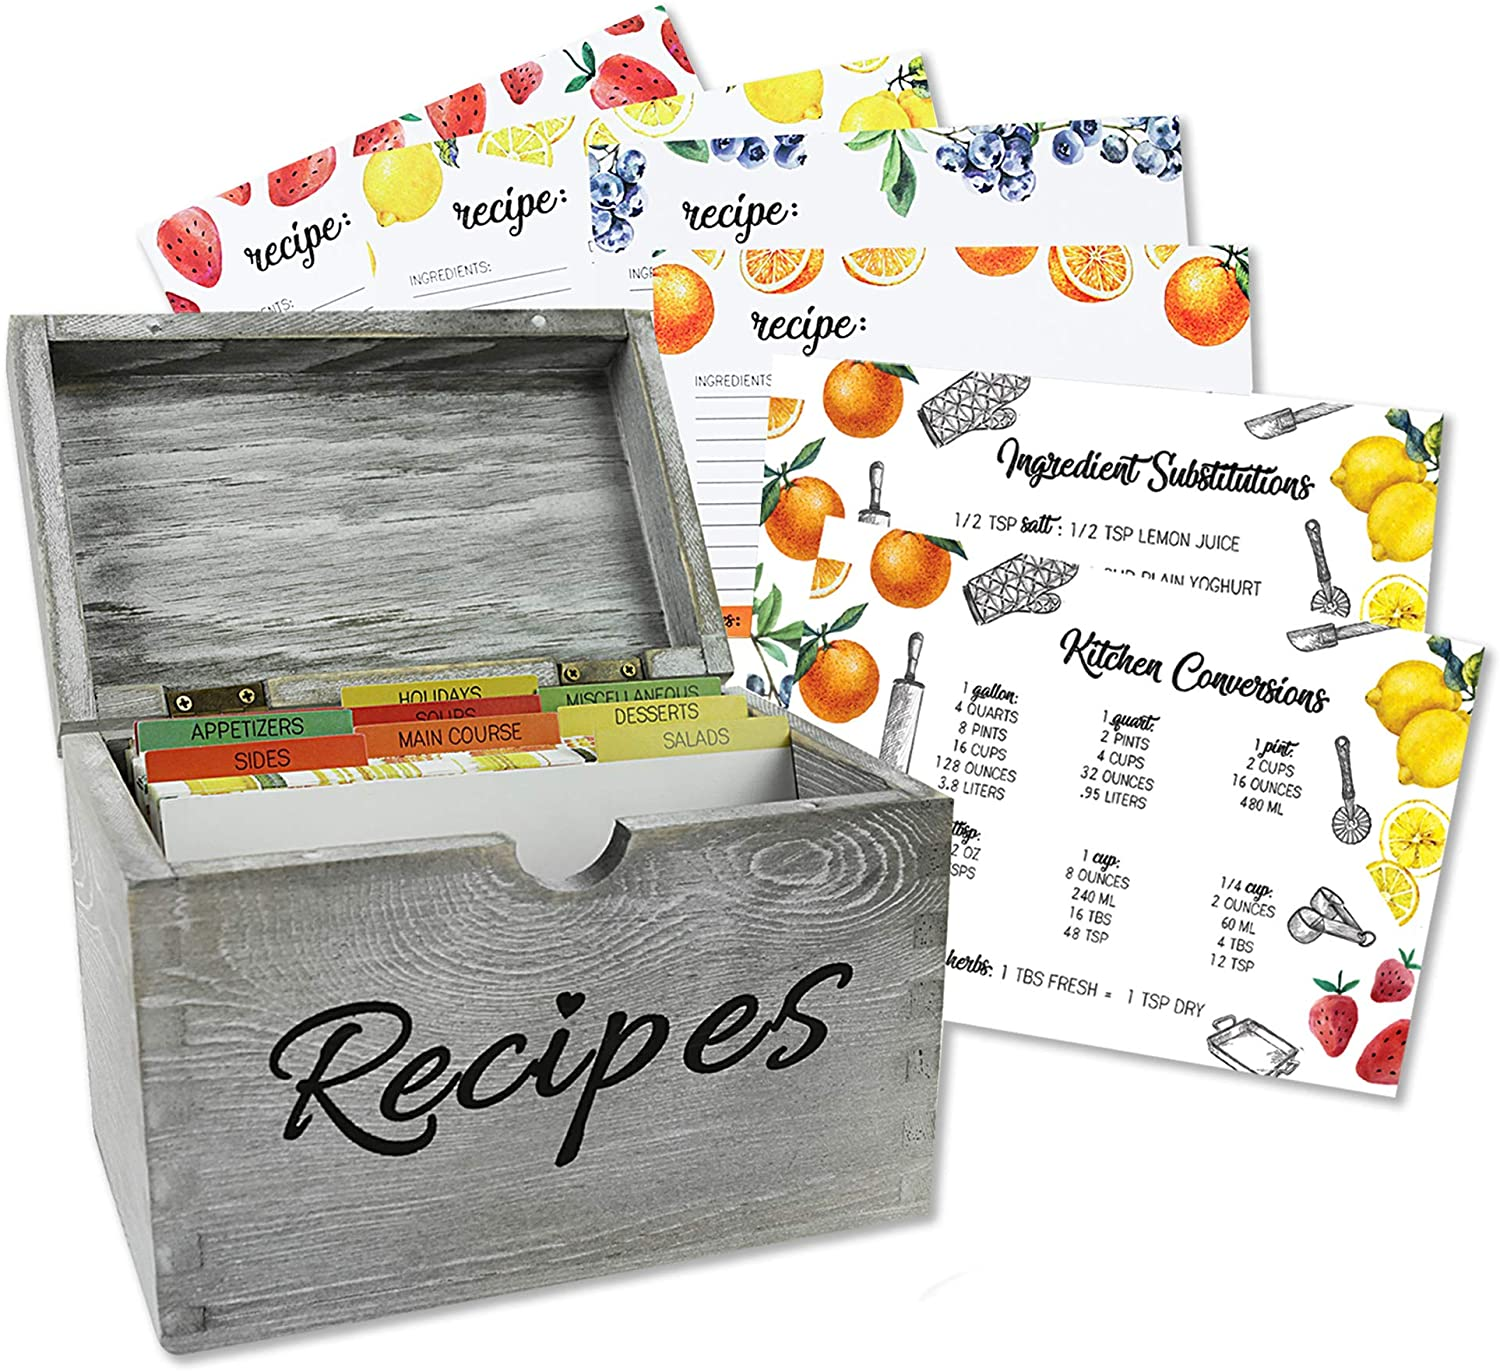 Baking & Beyond Recipe Box - Vintage Style Solid Pinewood Recipe Organizer - Recipe Card Holder Box with 100 4x6 inch Recipe Cards, 9 Dividers, 1 Conversion & 1 Substitution Cards (7x5.3x4 Inches)